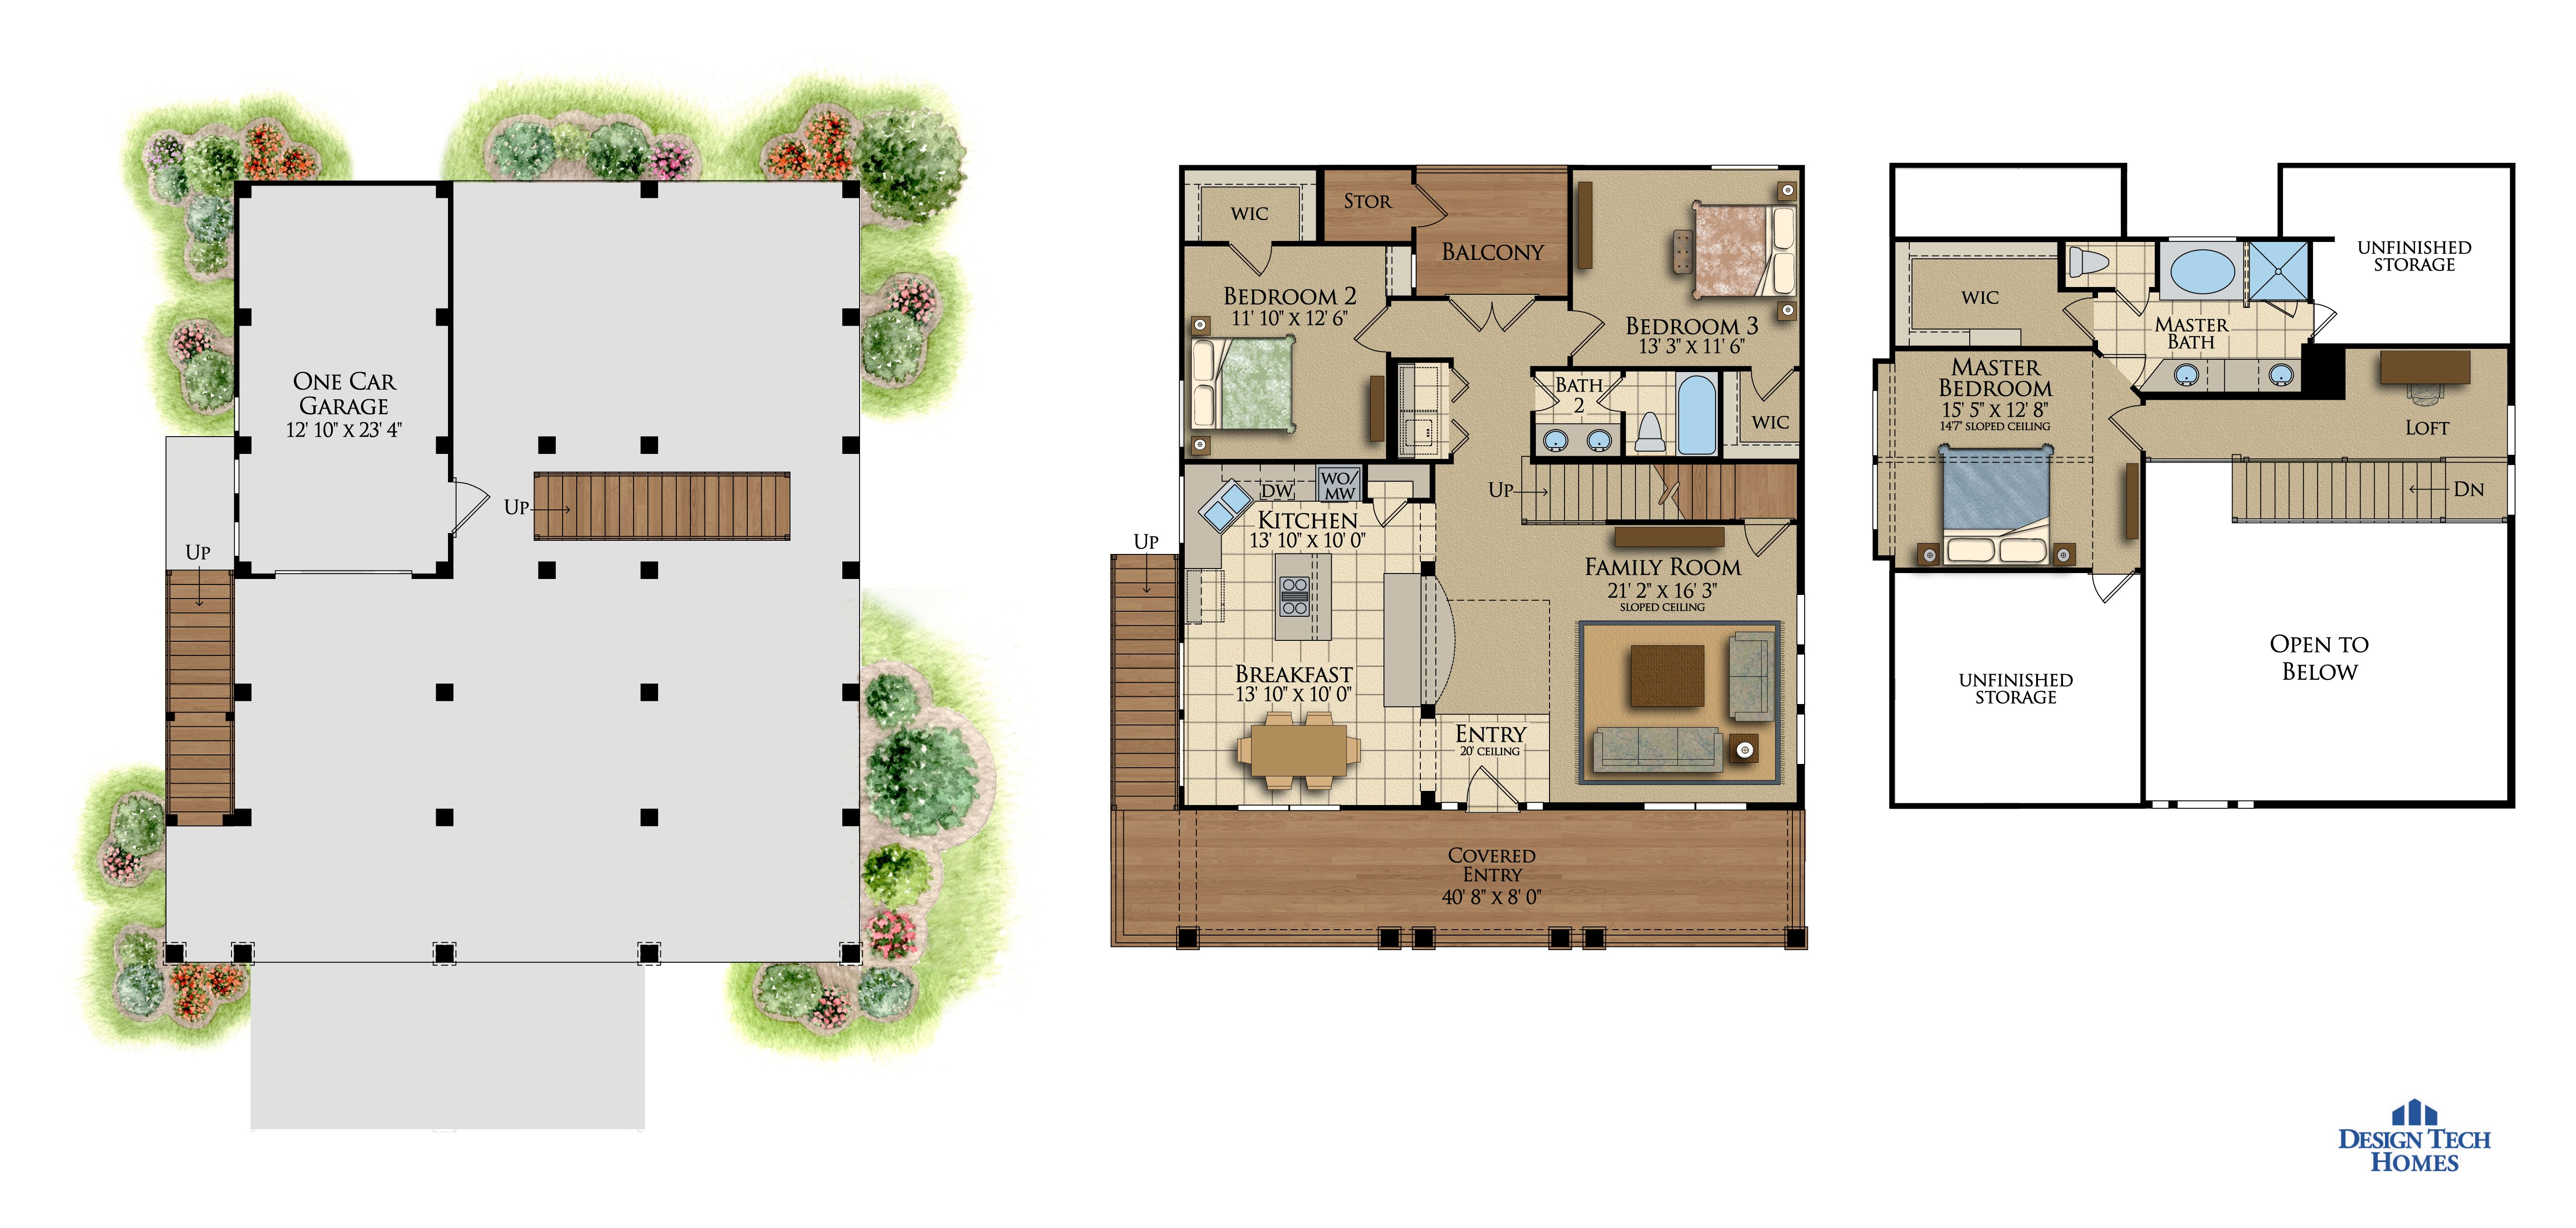 1,815 Sq Ft House Plan - 3 Bed 2 Bath, 1 Story - The Cape Pointe ...